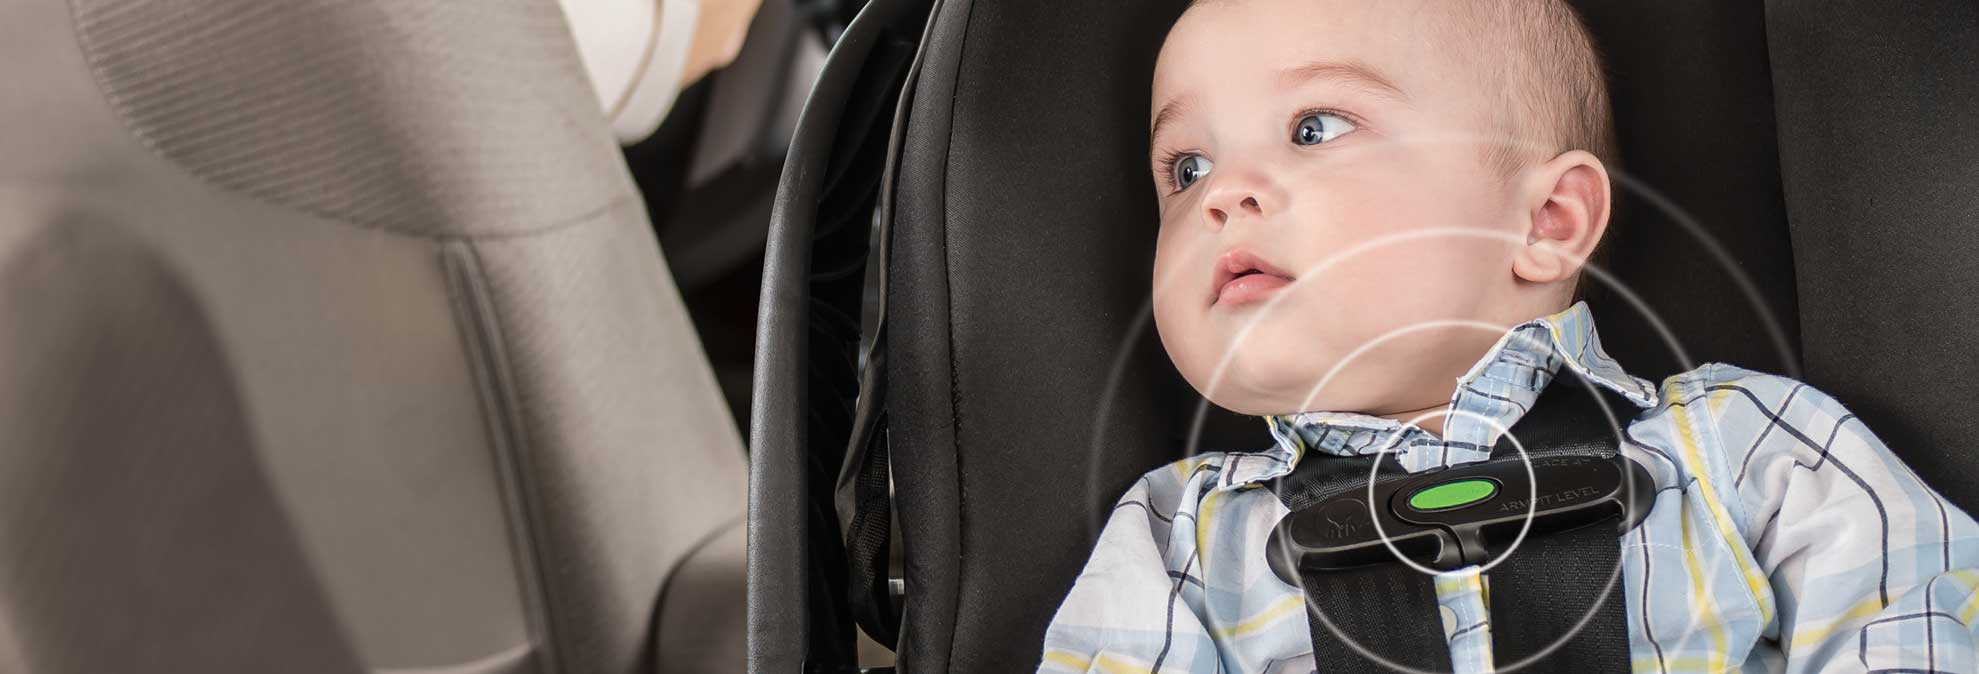 Evenflo Sensorsafe Car Seat Consumer Reports